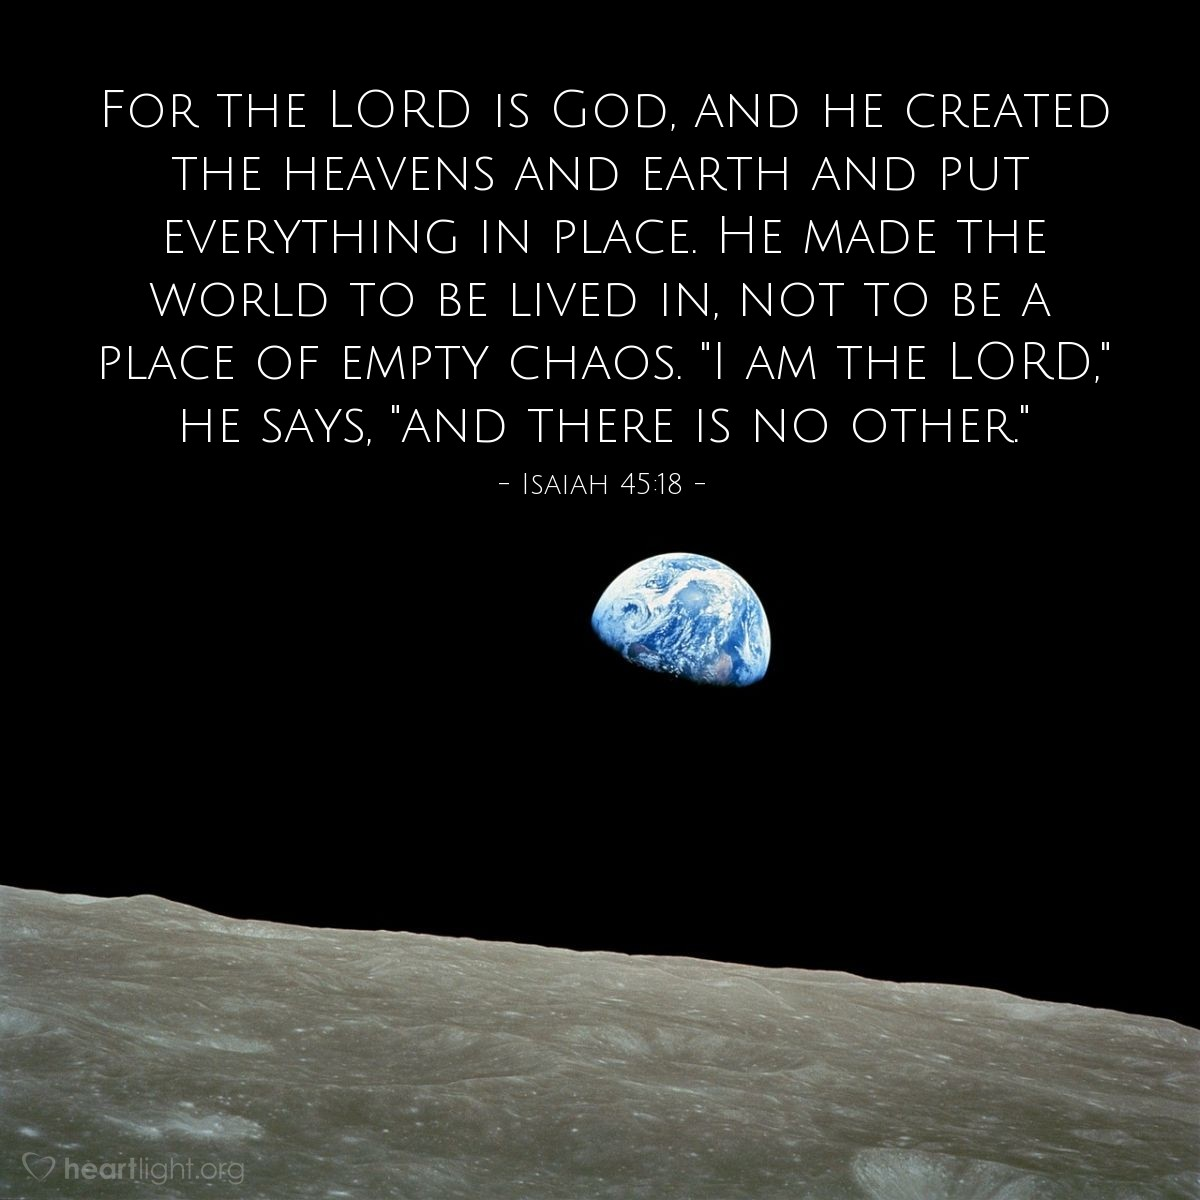 "Illustration of Isaiah 45:18 — For the LORD is God, and he created the heavens and earth and put everything in place. He made the world to be lived in, not to be a place of empty chaos. ""I am the LORD,"" he says, ""and there is no other."""